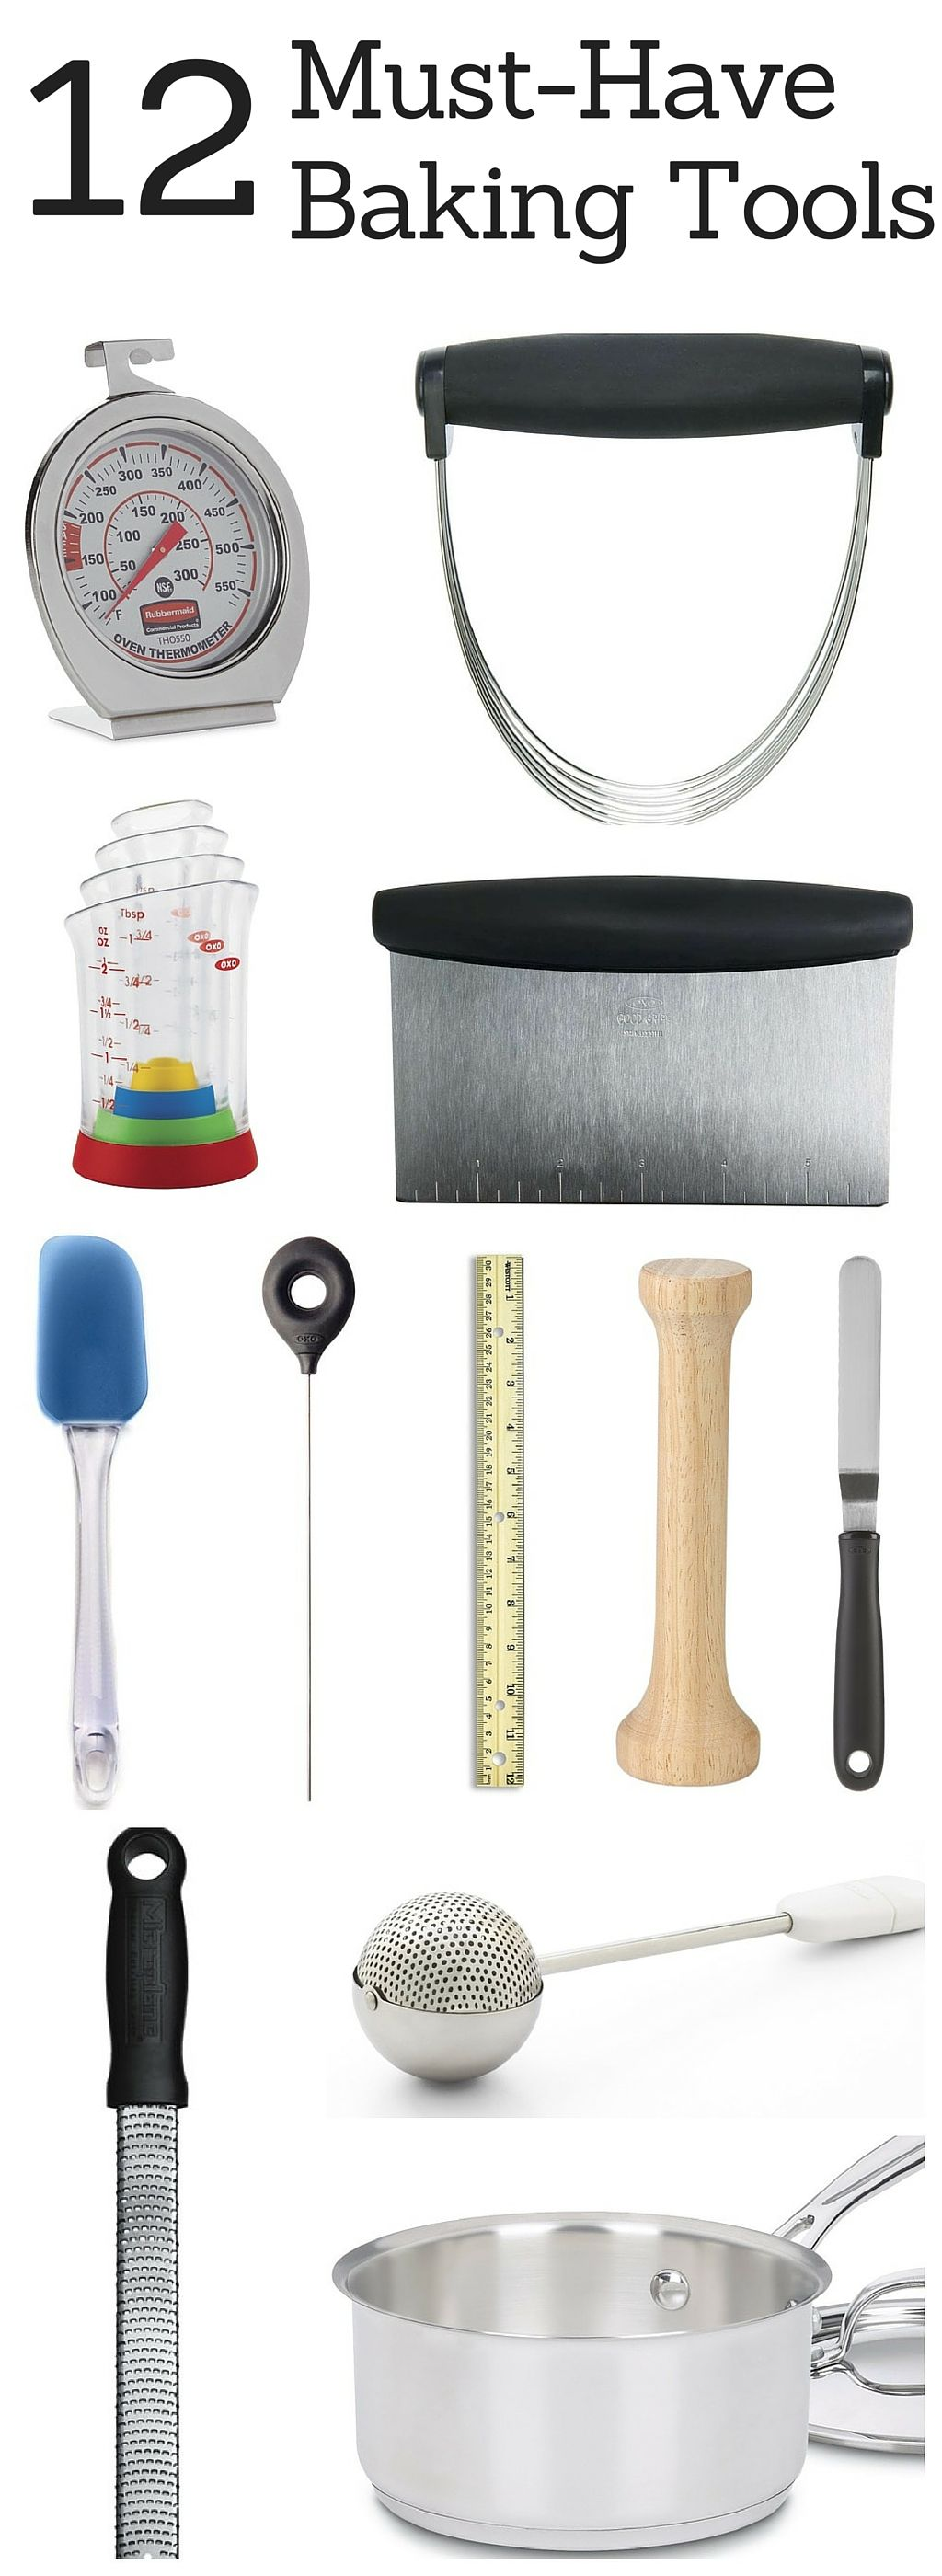 New From Bake Or Break 12 Must Have Baking Tools Baking Tools